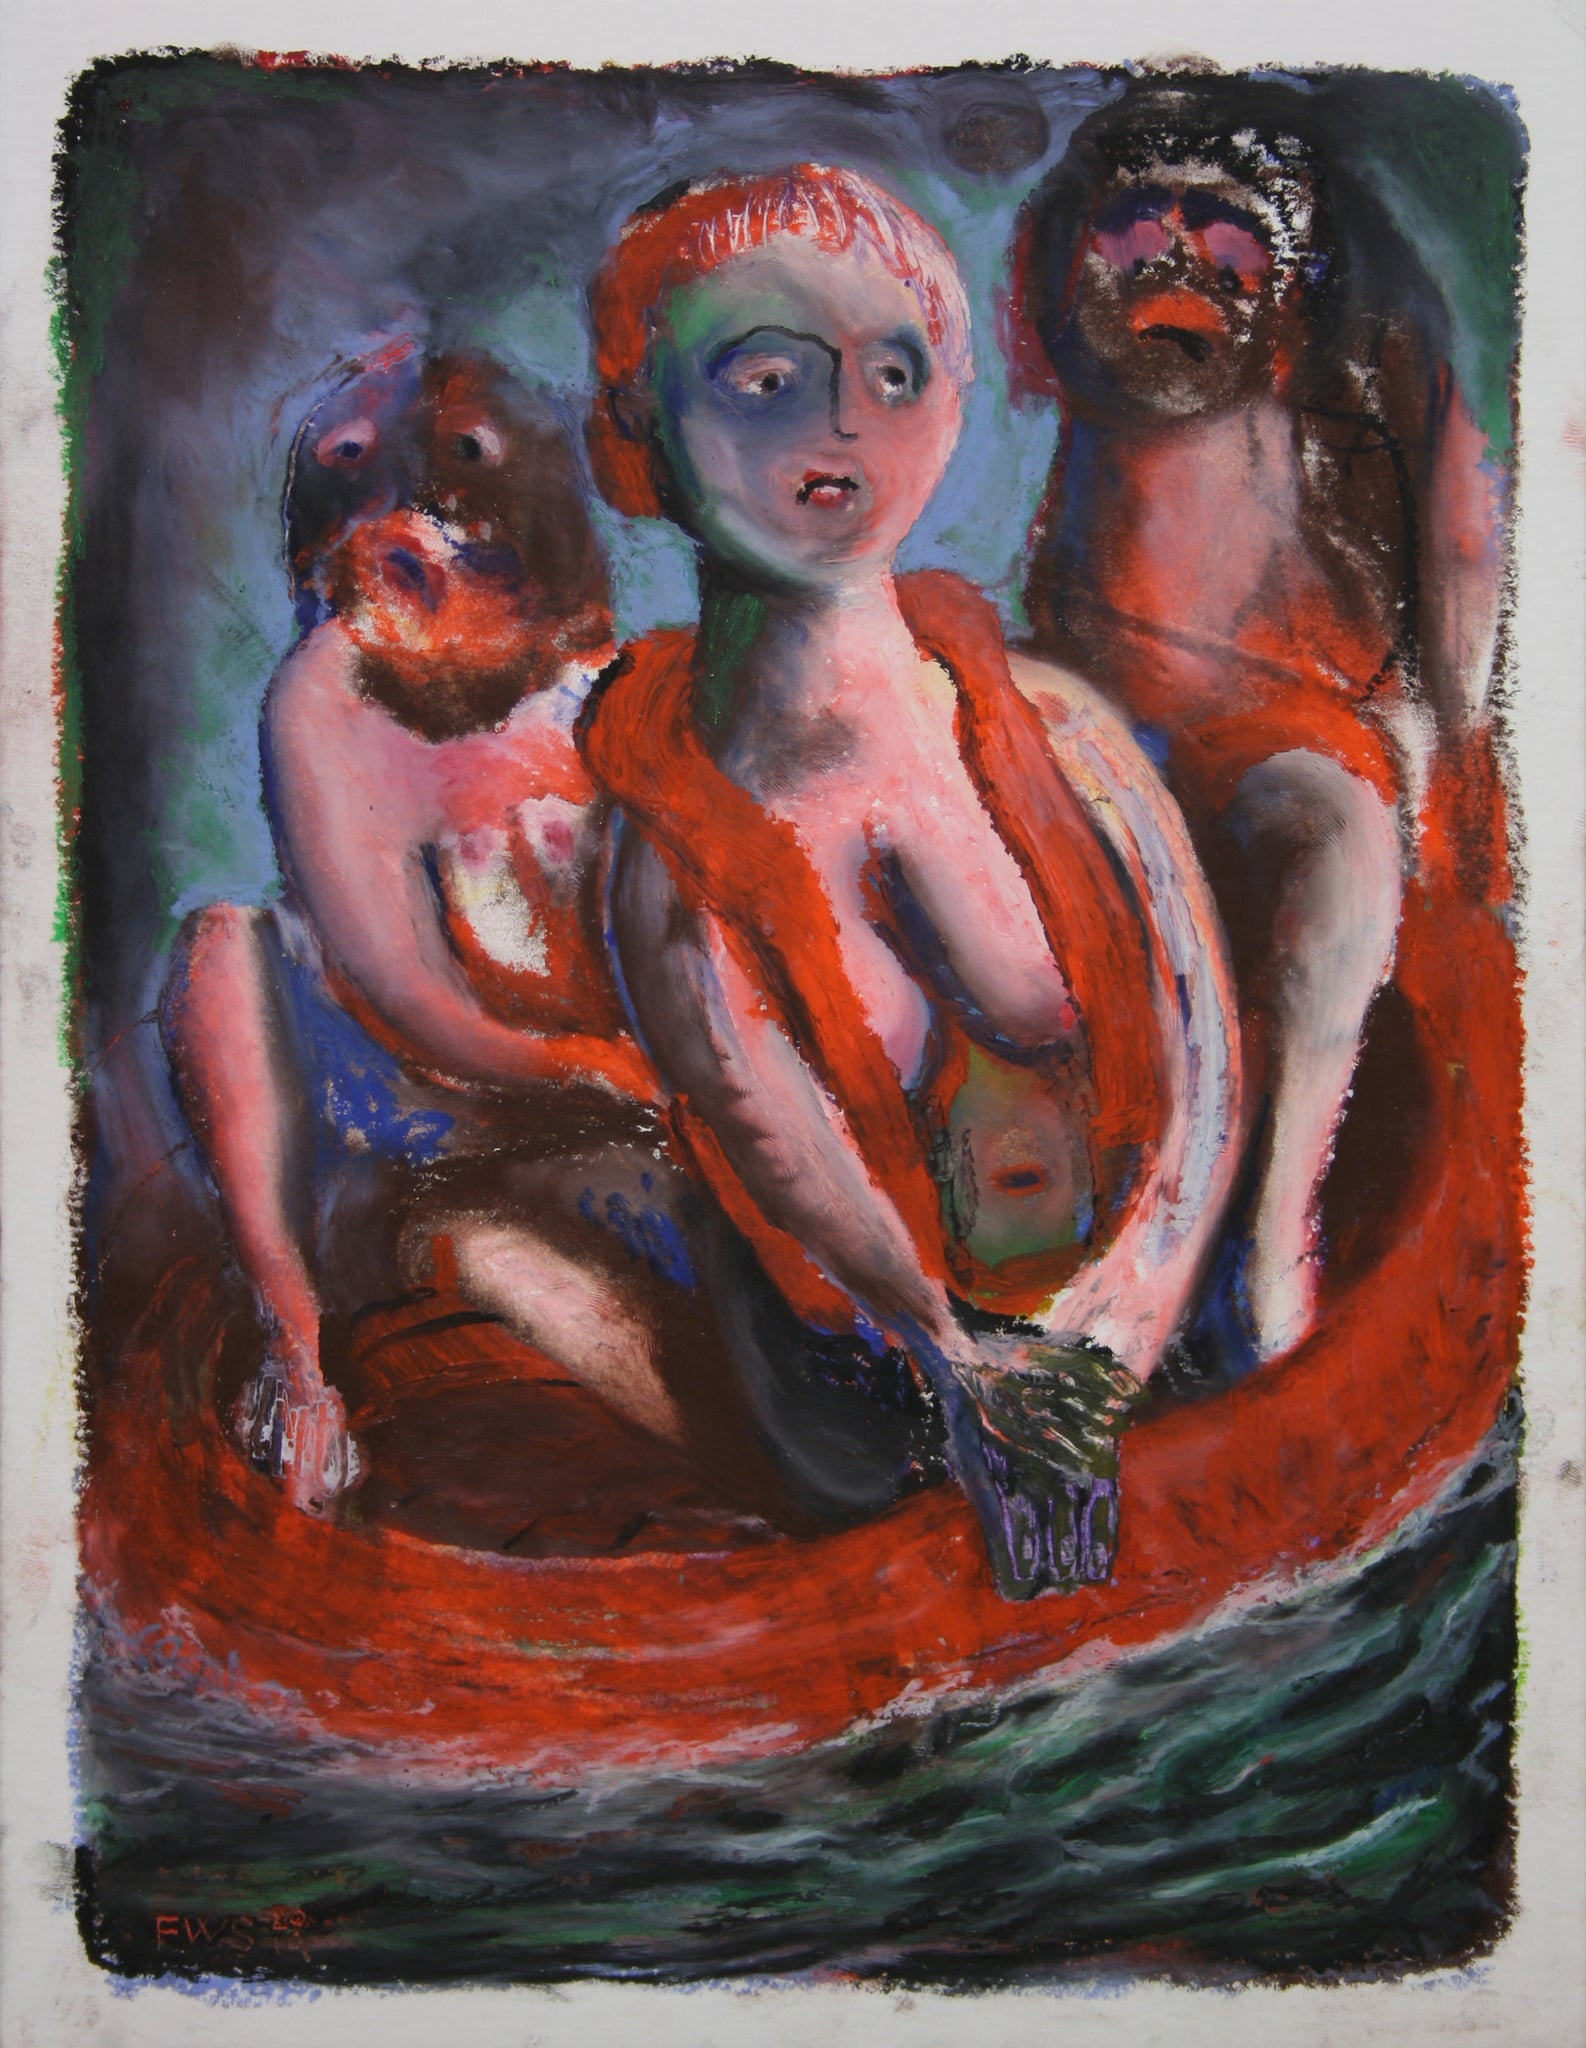 THREE FIGURES IN RUBBER BOAT